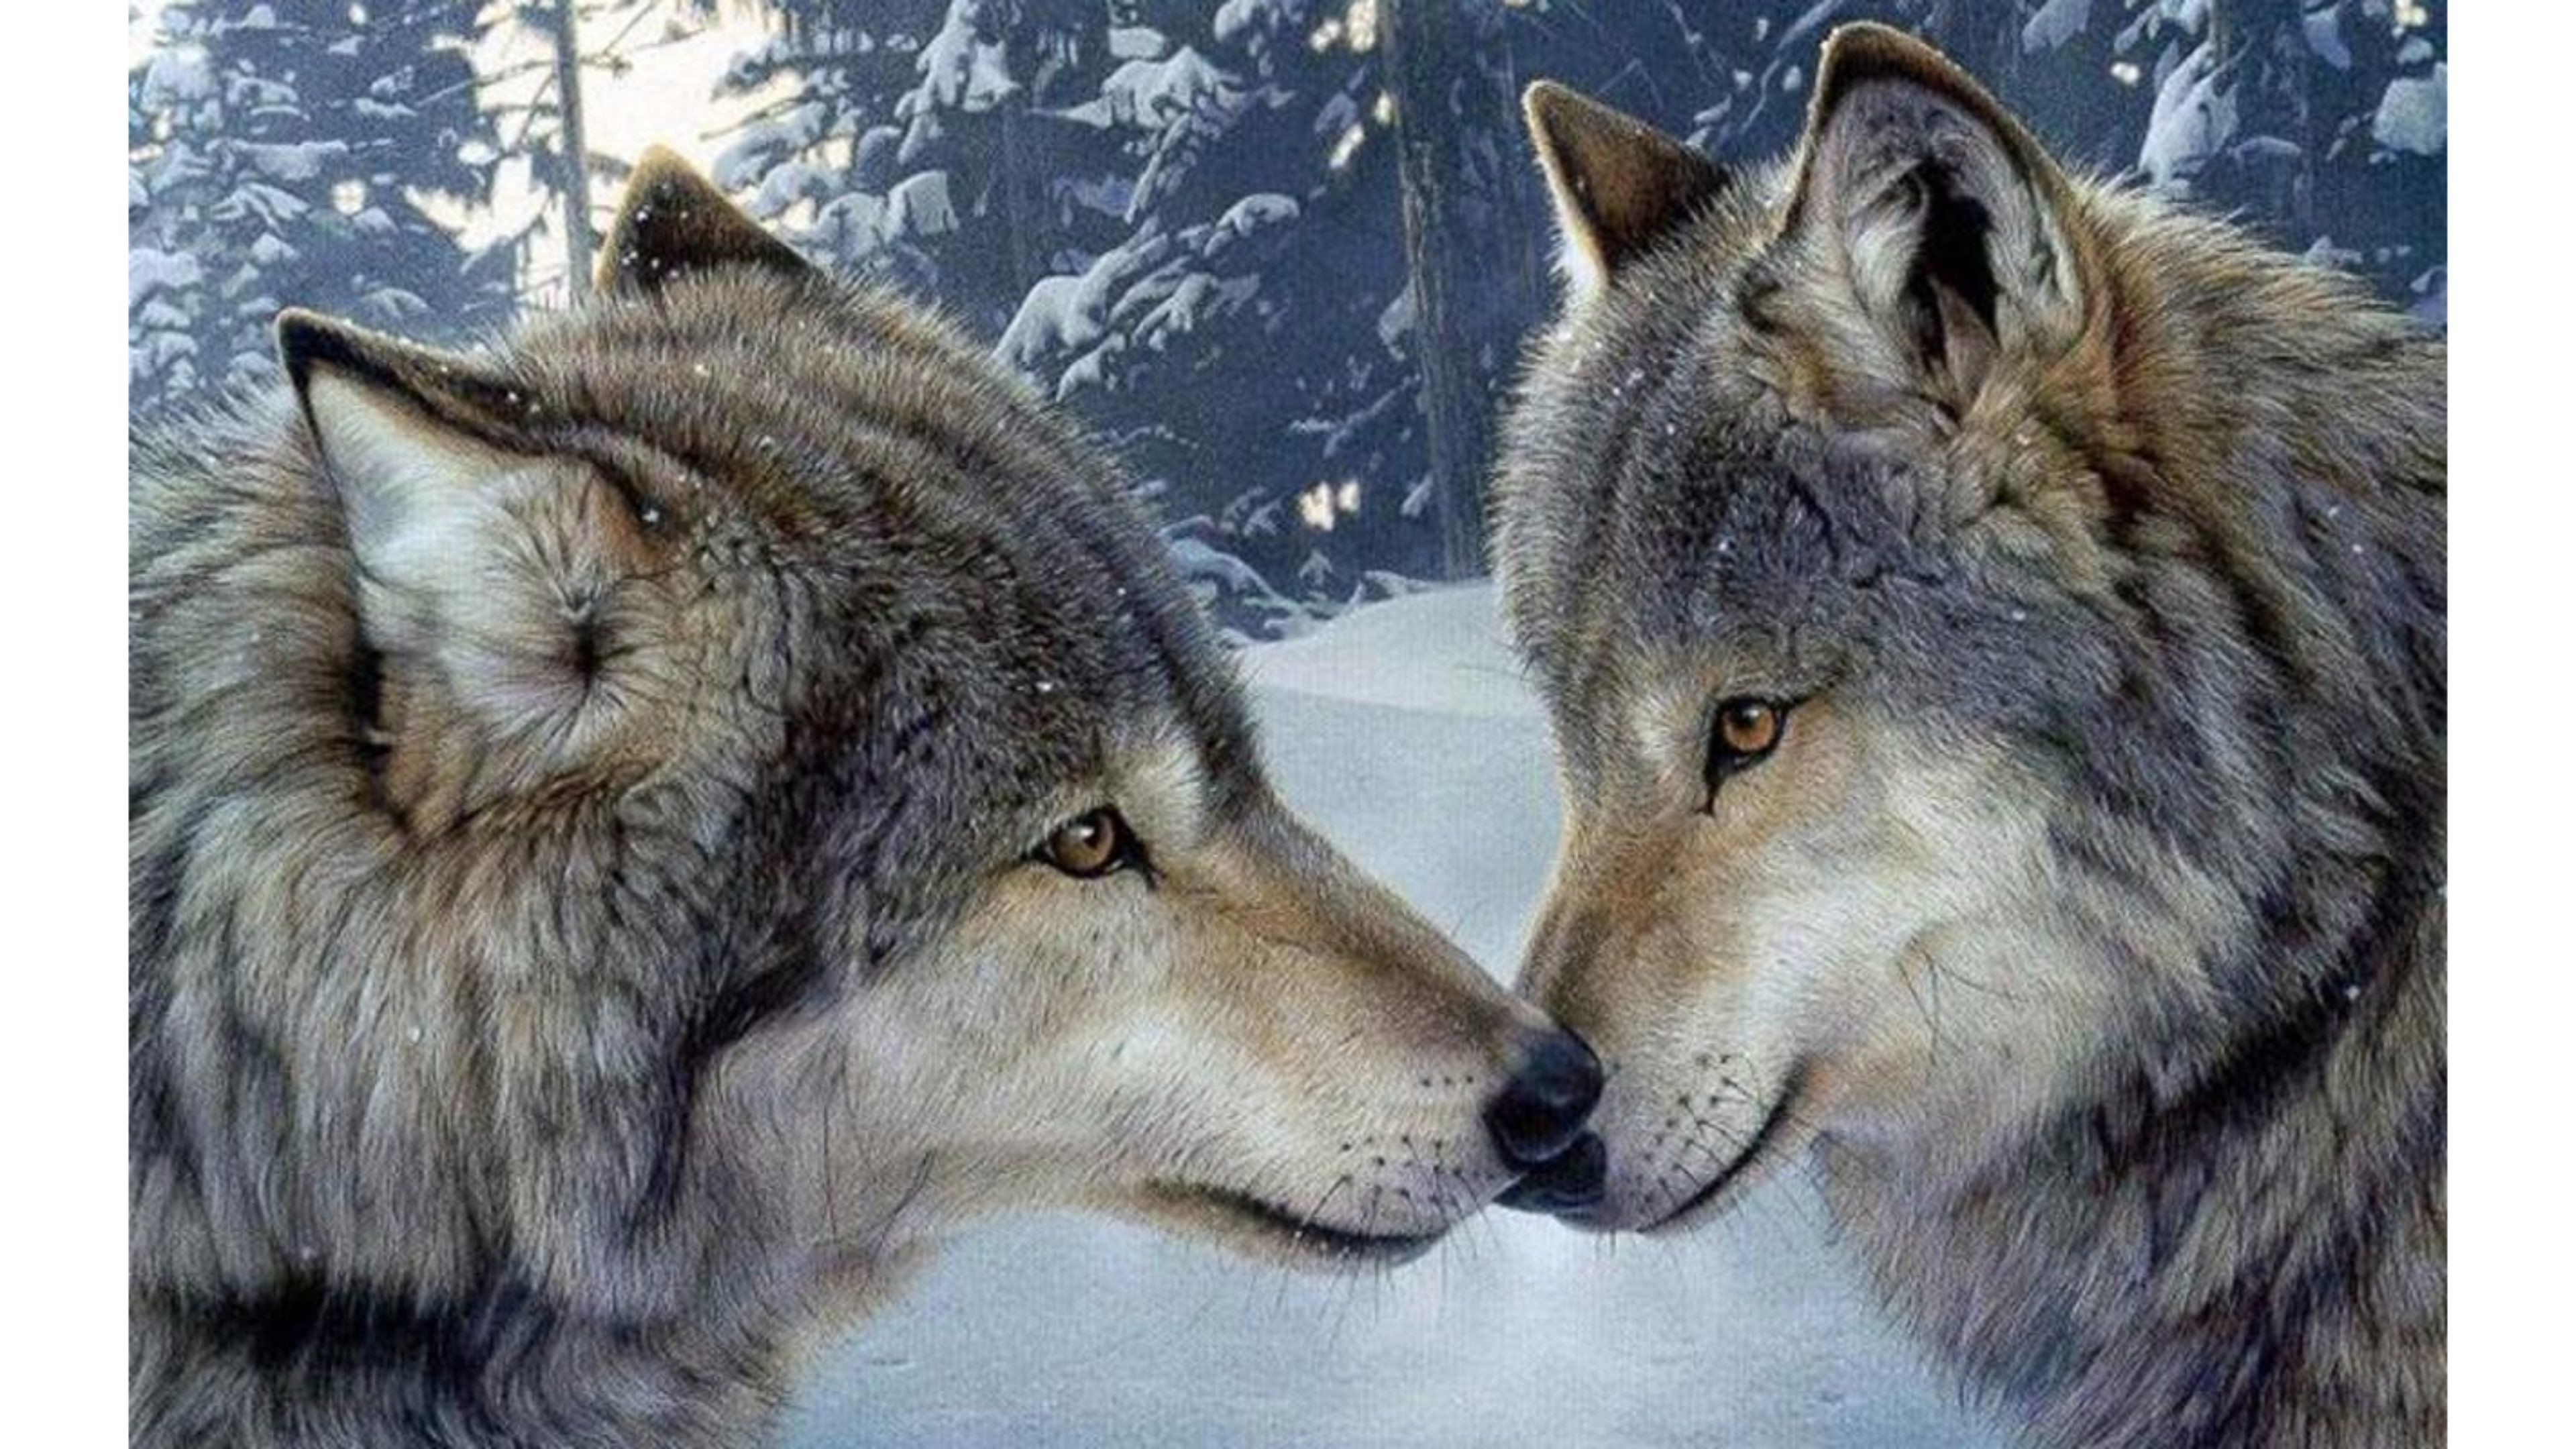 3840x2160 Wolf Encounter Romance 4K Wallpaper